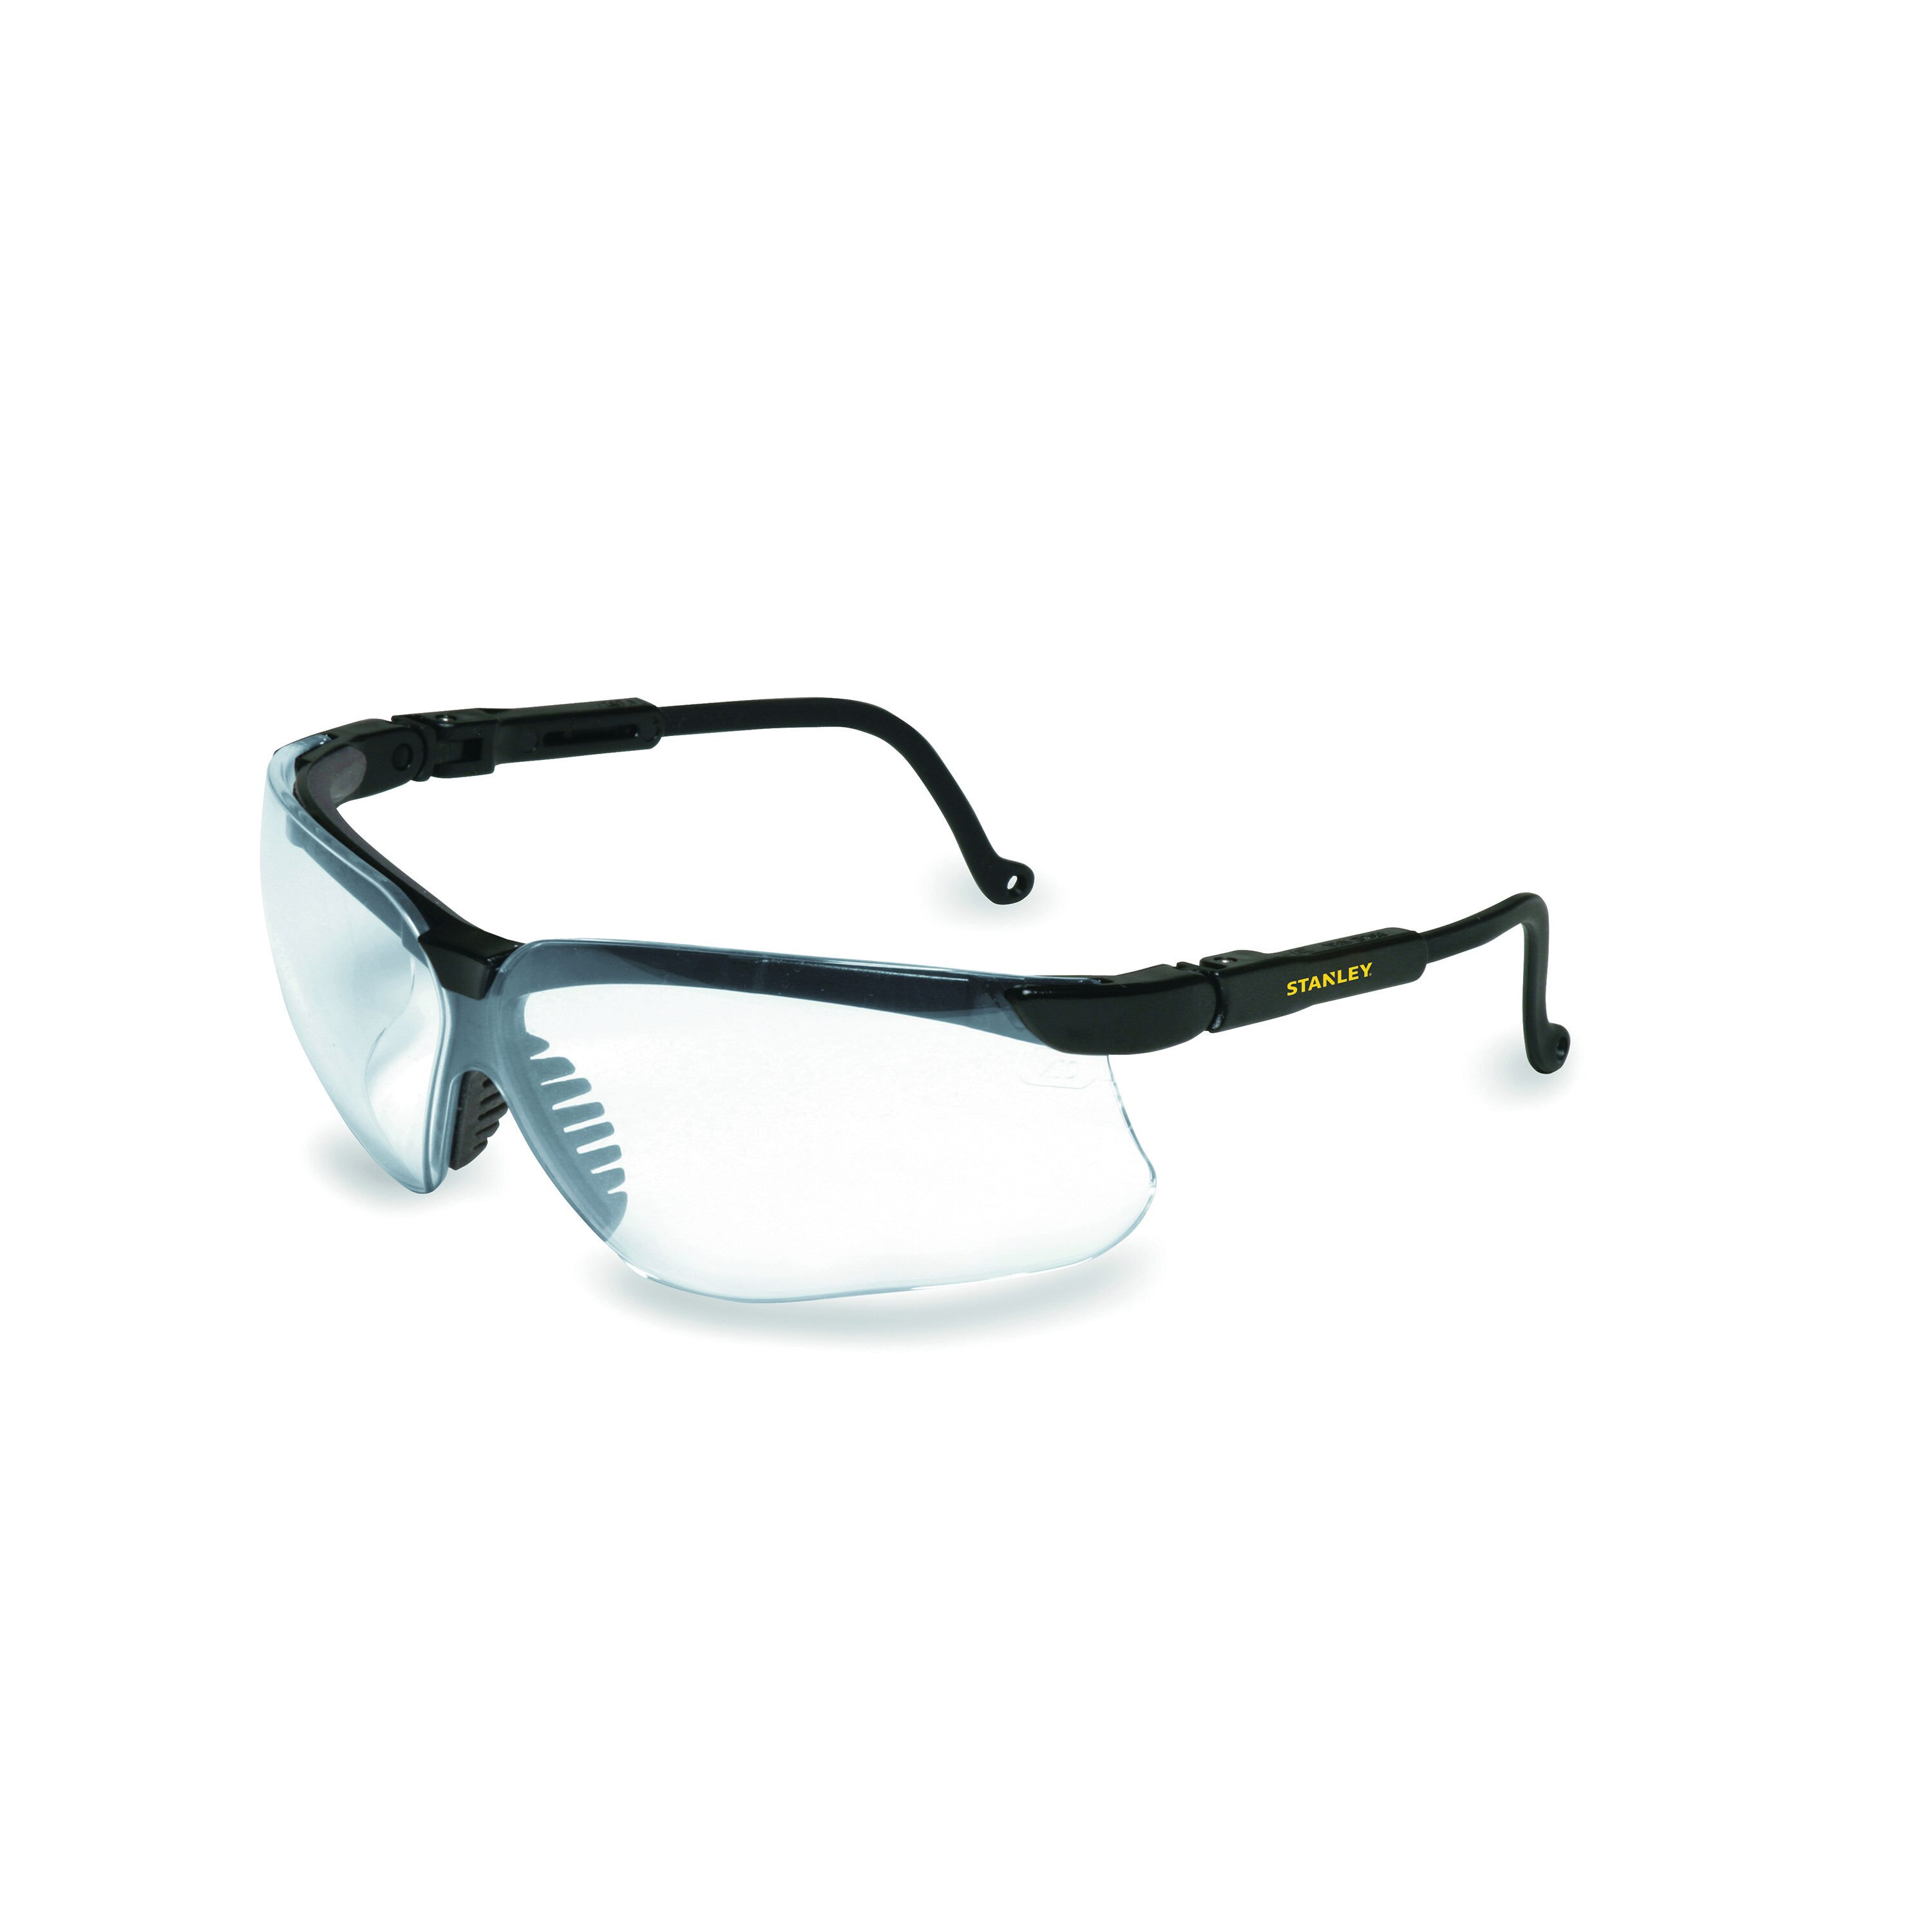 Stanley Tools - Genesis Premium Safety Glasses Clear Lens - RST-61023